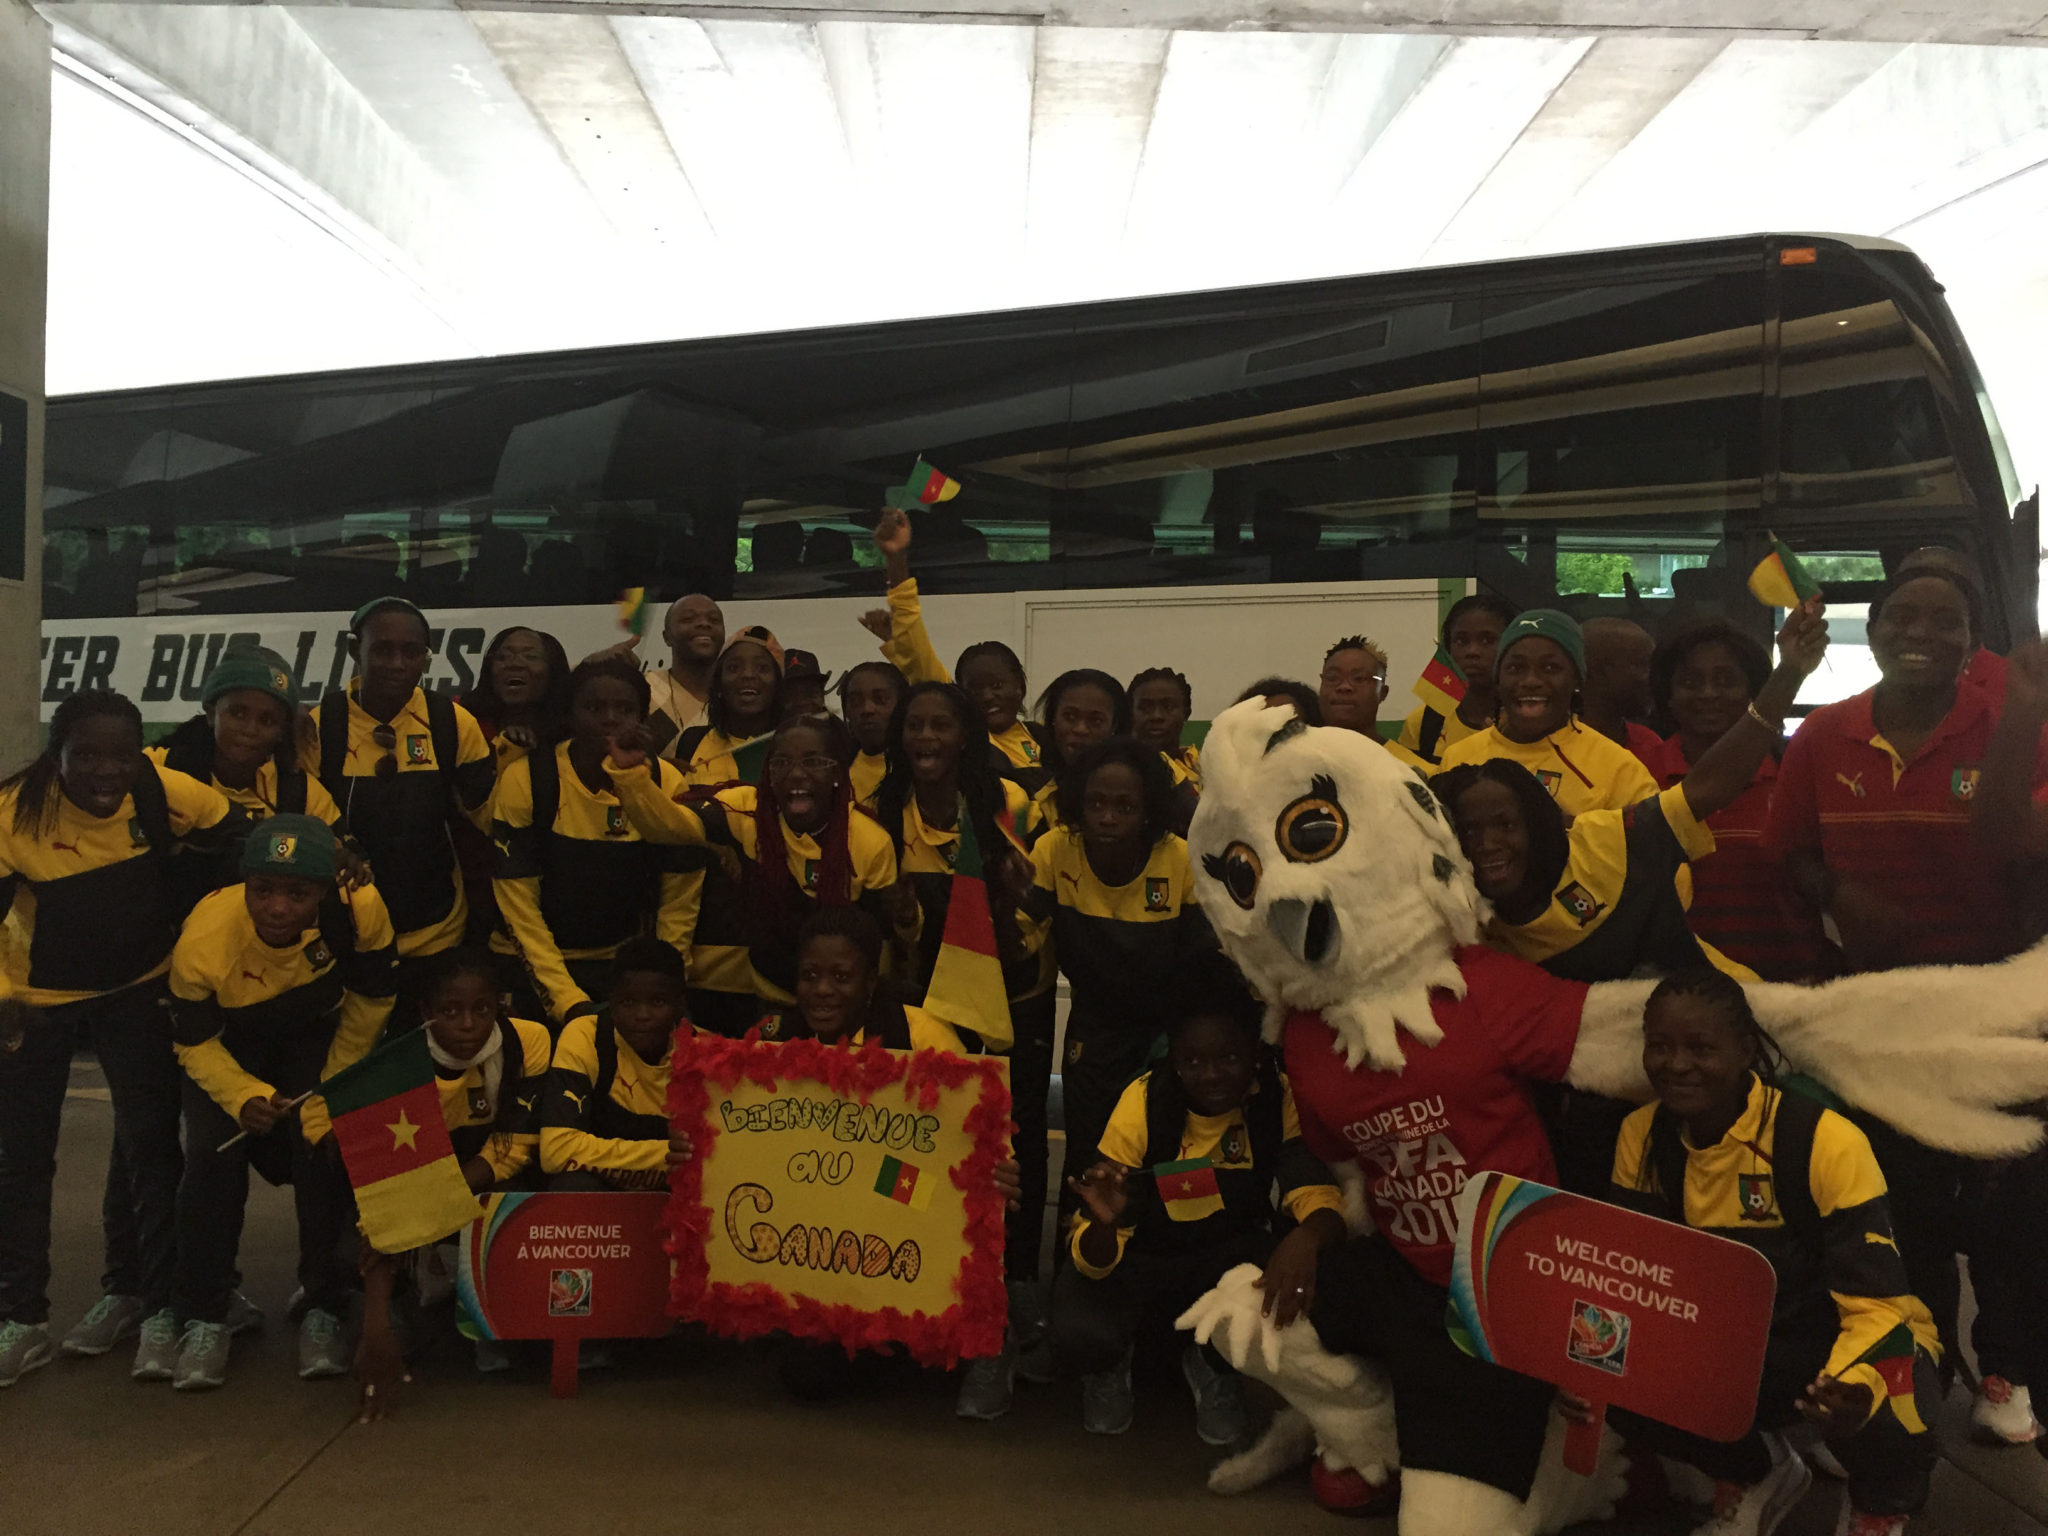 Cameroon is the first of 24 World Cup teams to arrive in Canada. (Photo Copyright Harjeet Johal for The Equalizer)